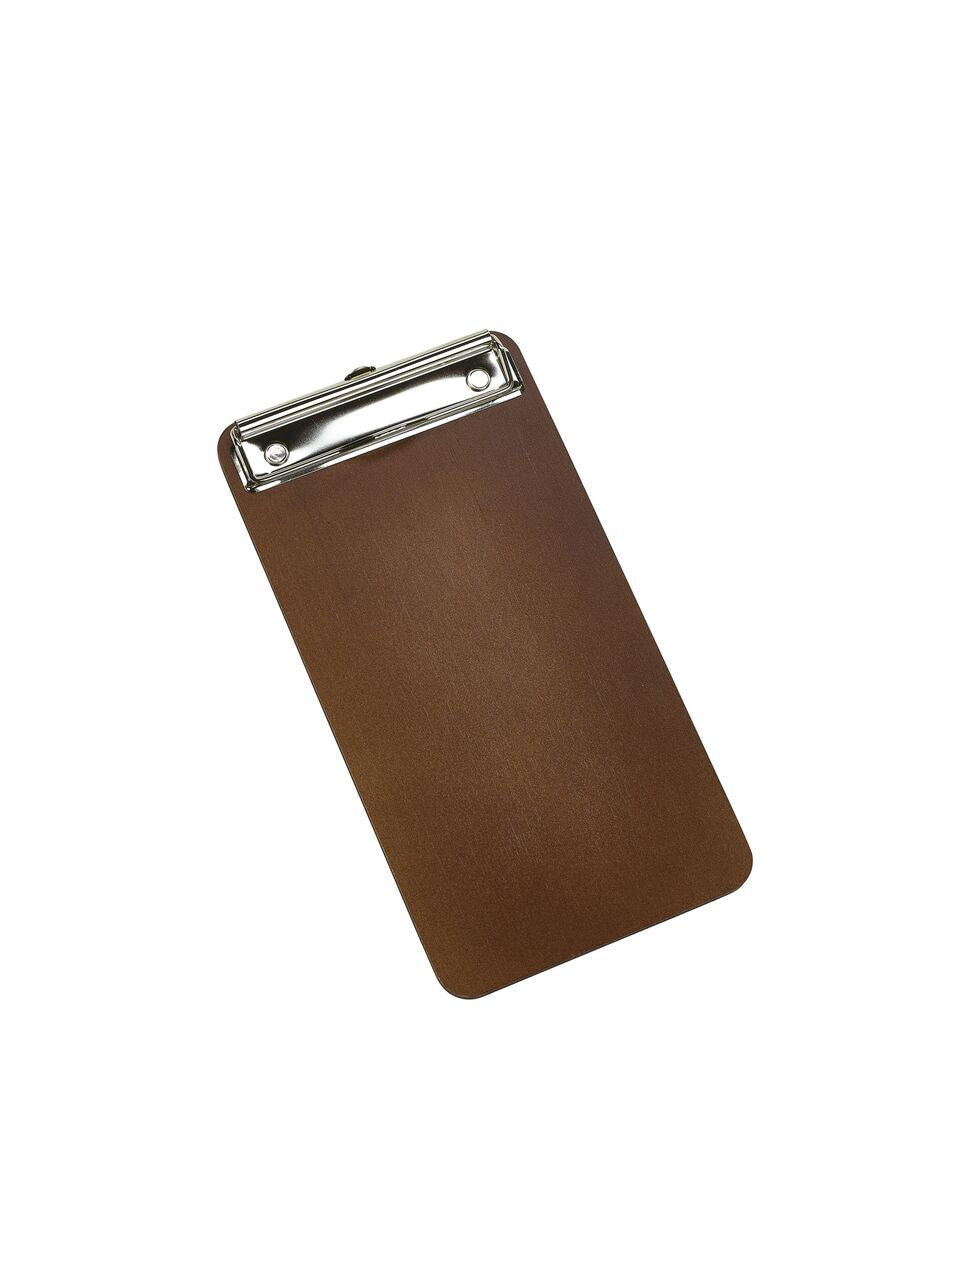 Wooden Menu Clipboard Bill Presenter 13x24.5x0.6cm